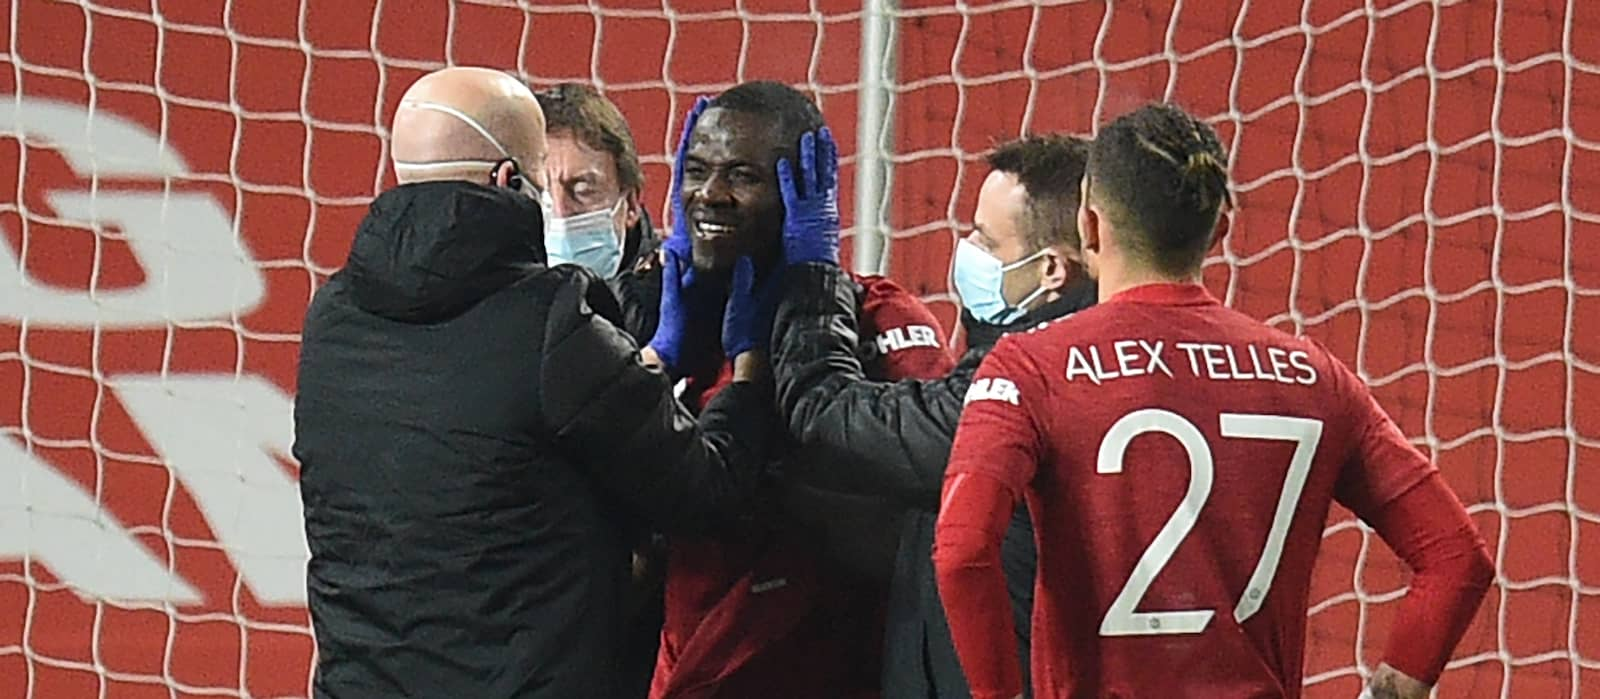 Ole Gunnar Solskjaer clears up Eric Bailly injury after Watford win